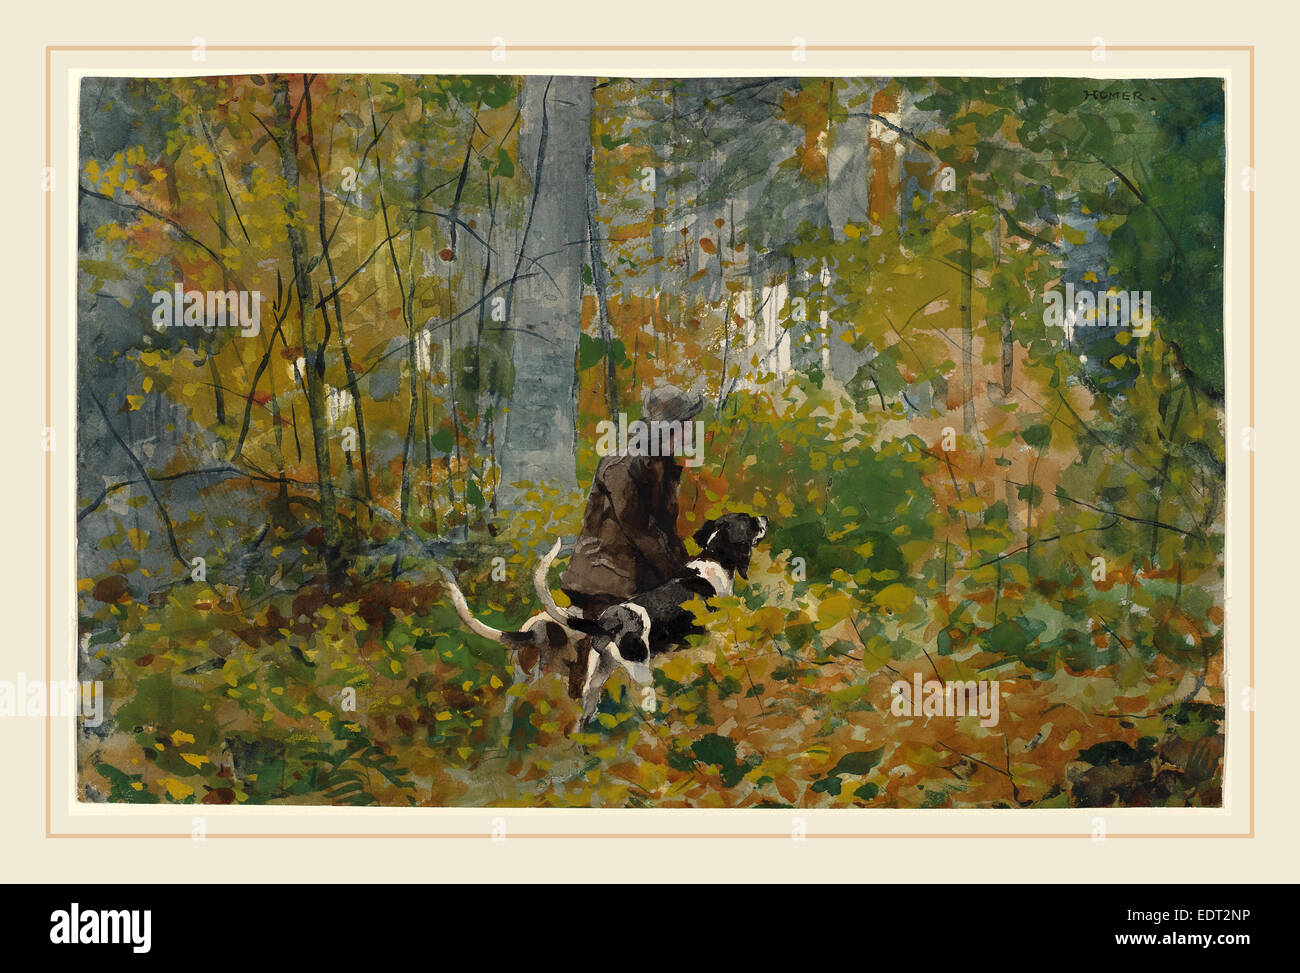 Winslow Homer (American, 1836-1910), On the Trail, c. 1892, watercolor over graphite - Stock Image